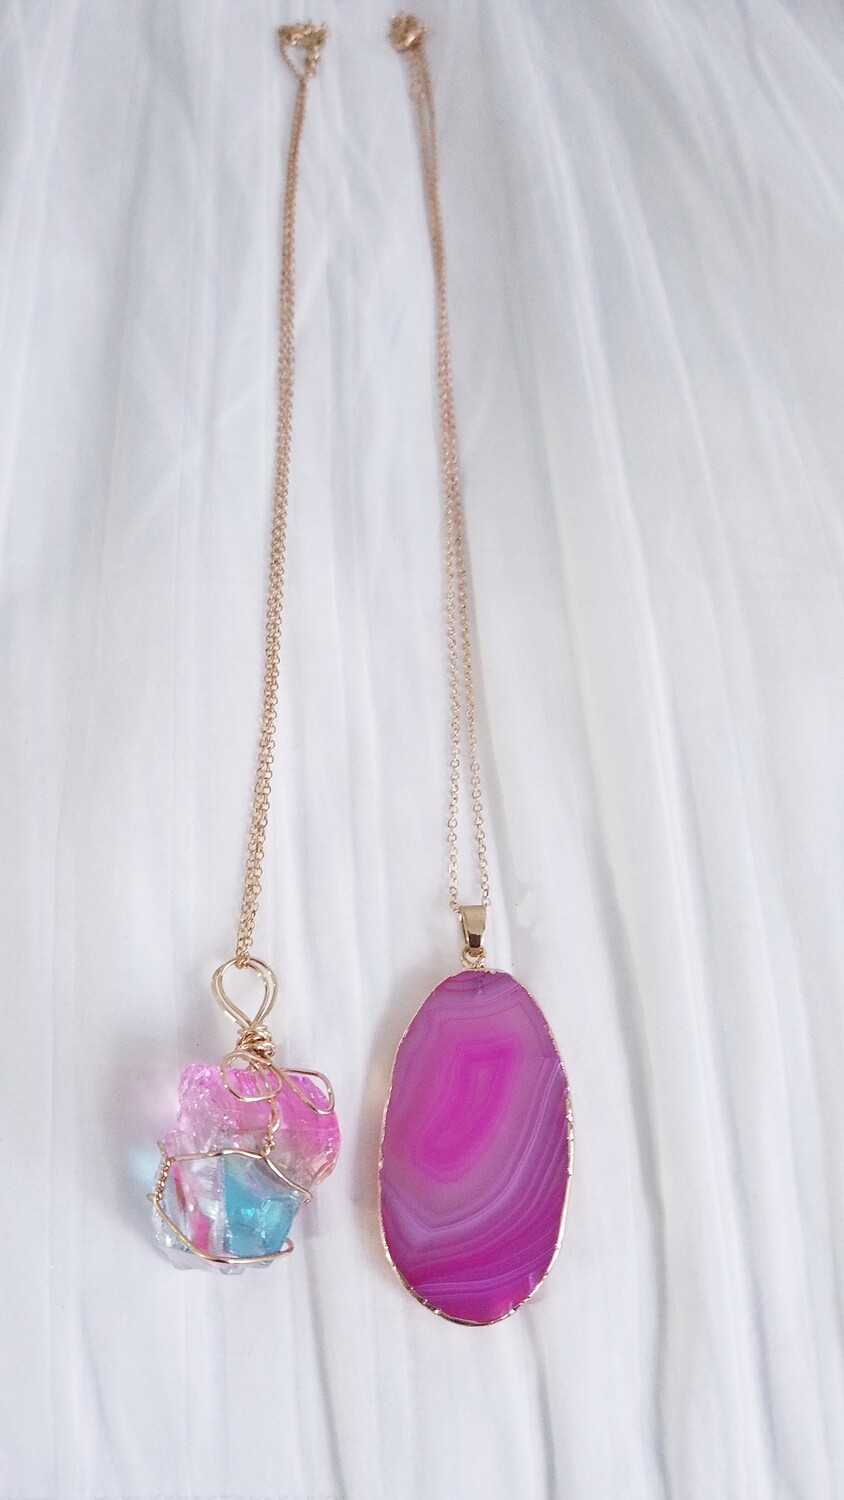 Charka Heart / Zentron Crystal Agate- Healing Necklaces